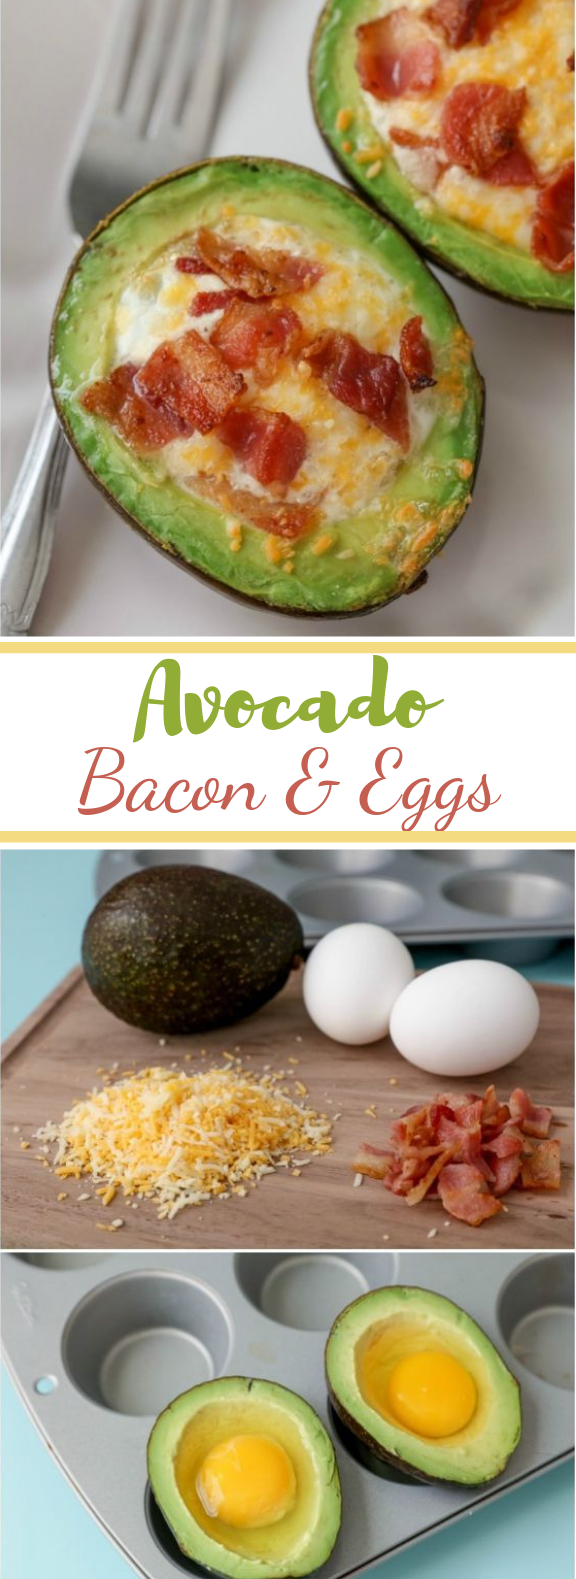 Avocado Bacon and Eggs #healthy #breakfast